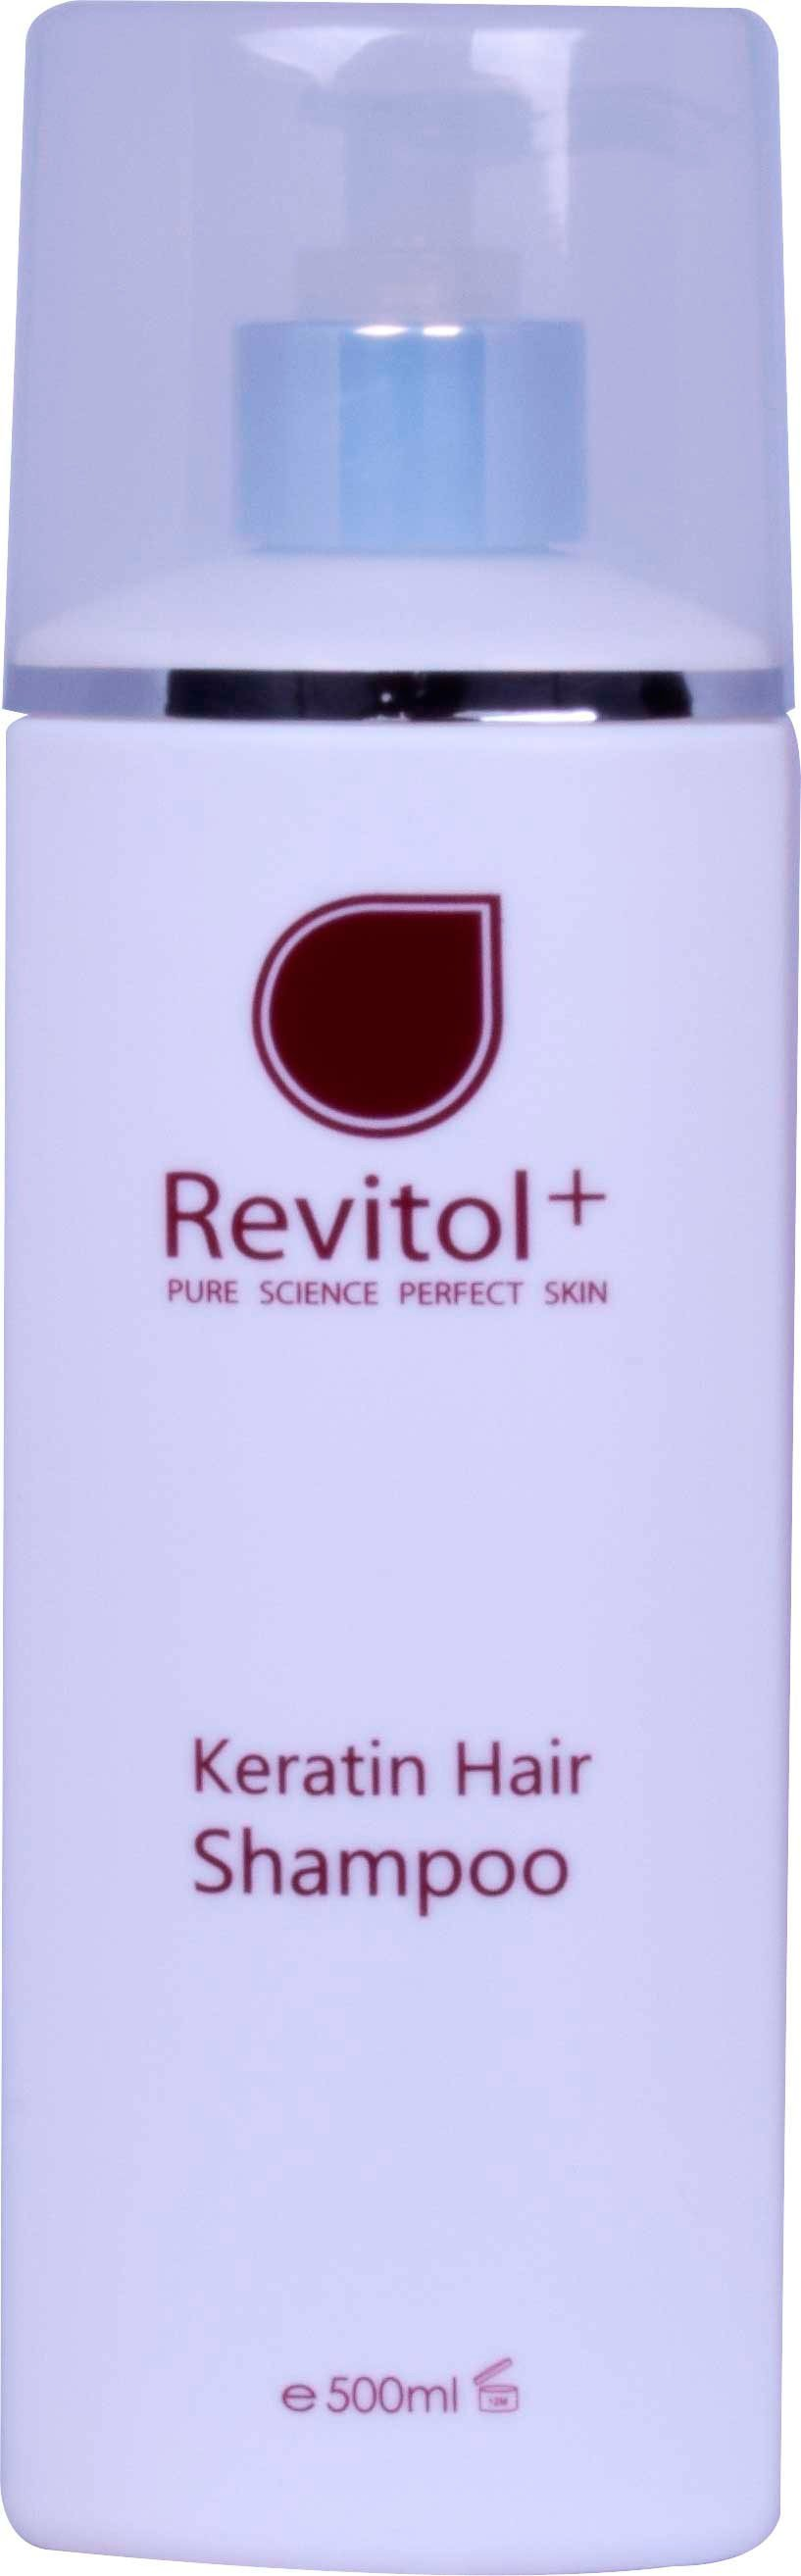 Revitol Keratin Hair Shampoo